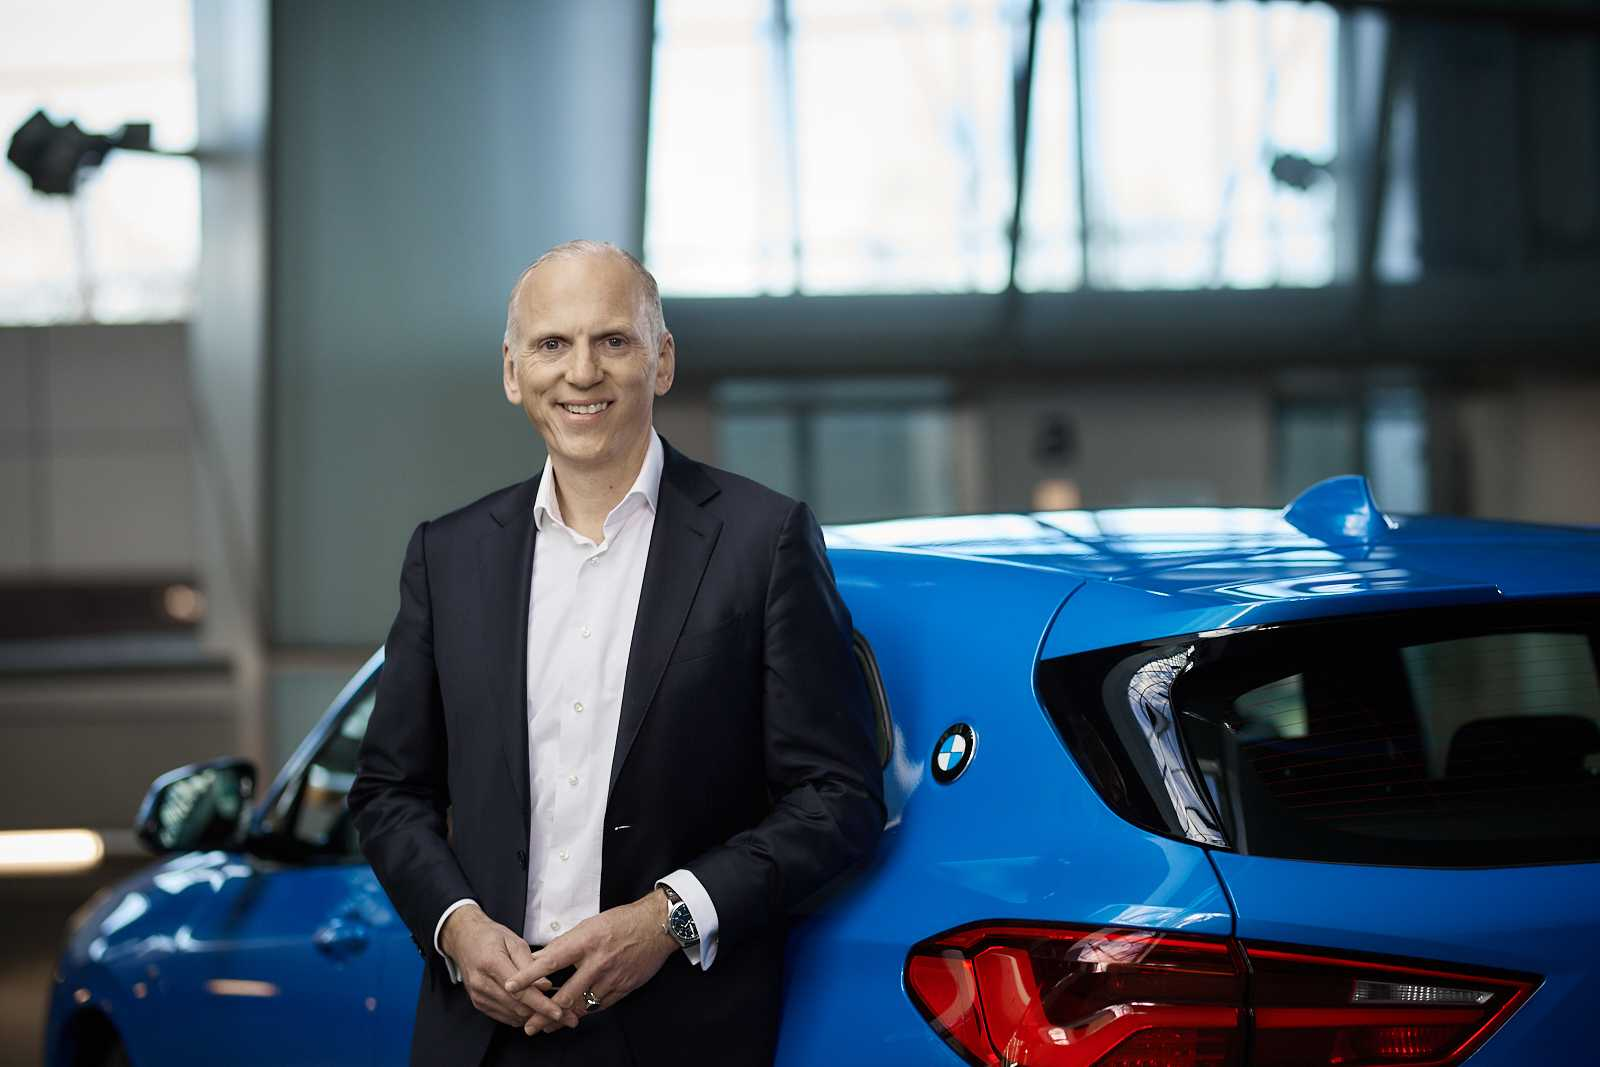 Cv Of Pieter Nota Member Of The Board Of Management Of Bmw Ag